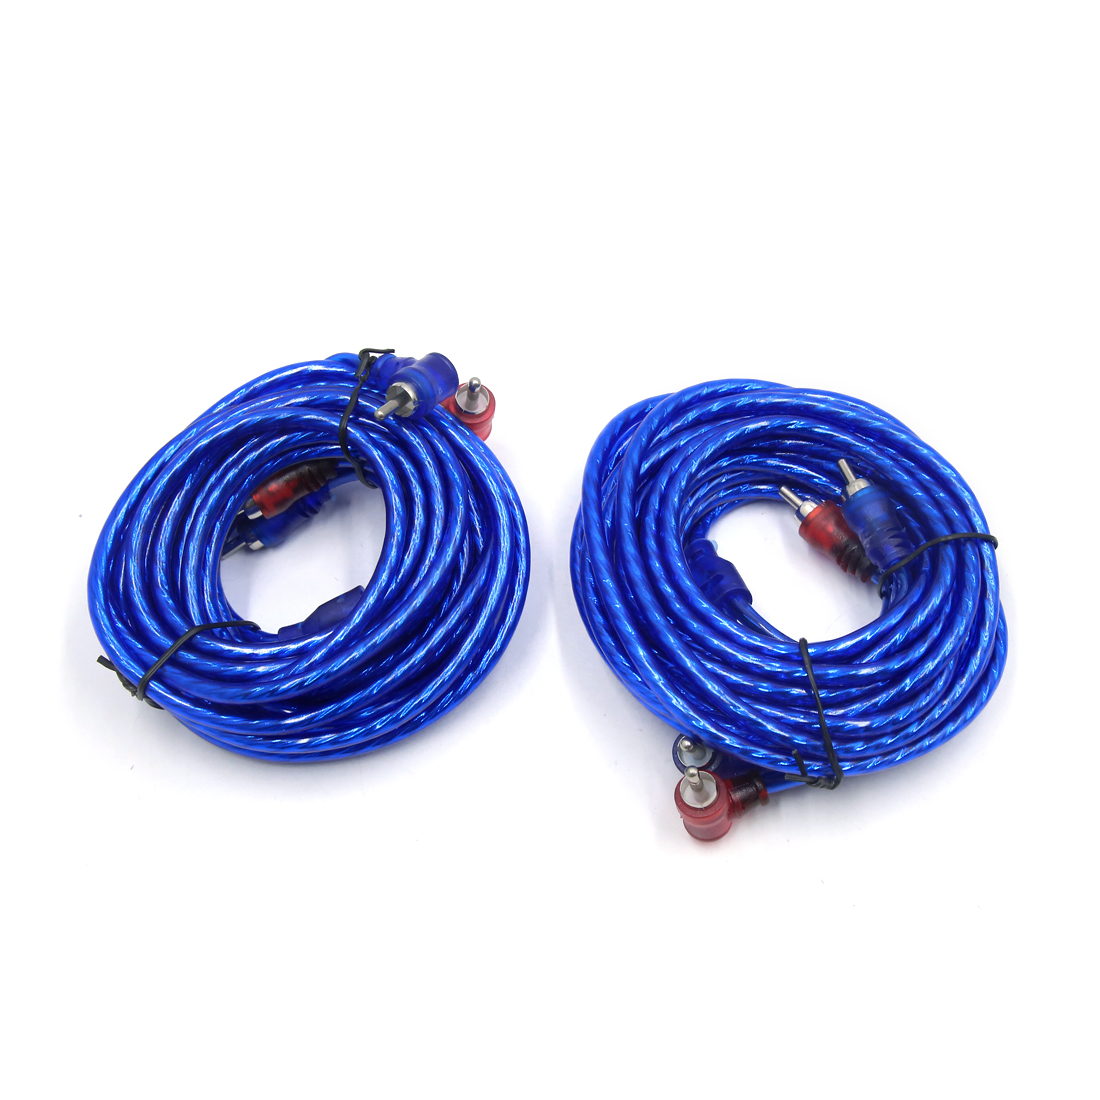 2Pcs 4.5-5m 2 RCA Male to Male Car Stereo Audio System Extension Cable Wire Blue